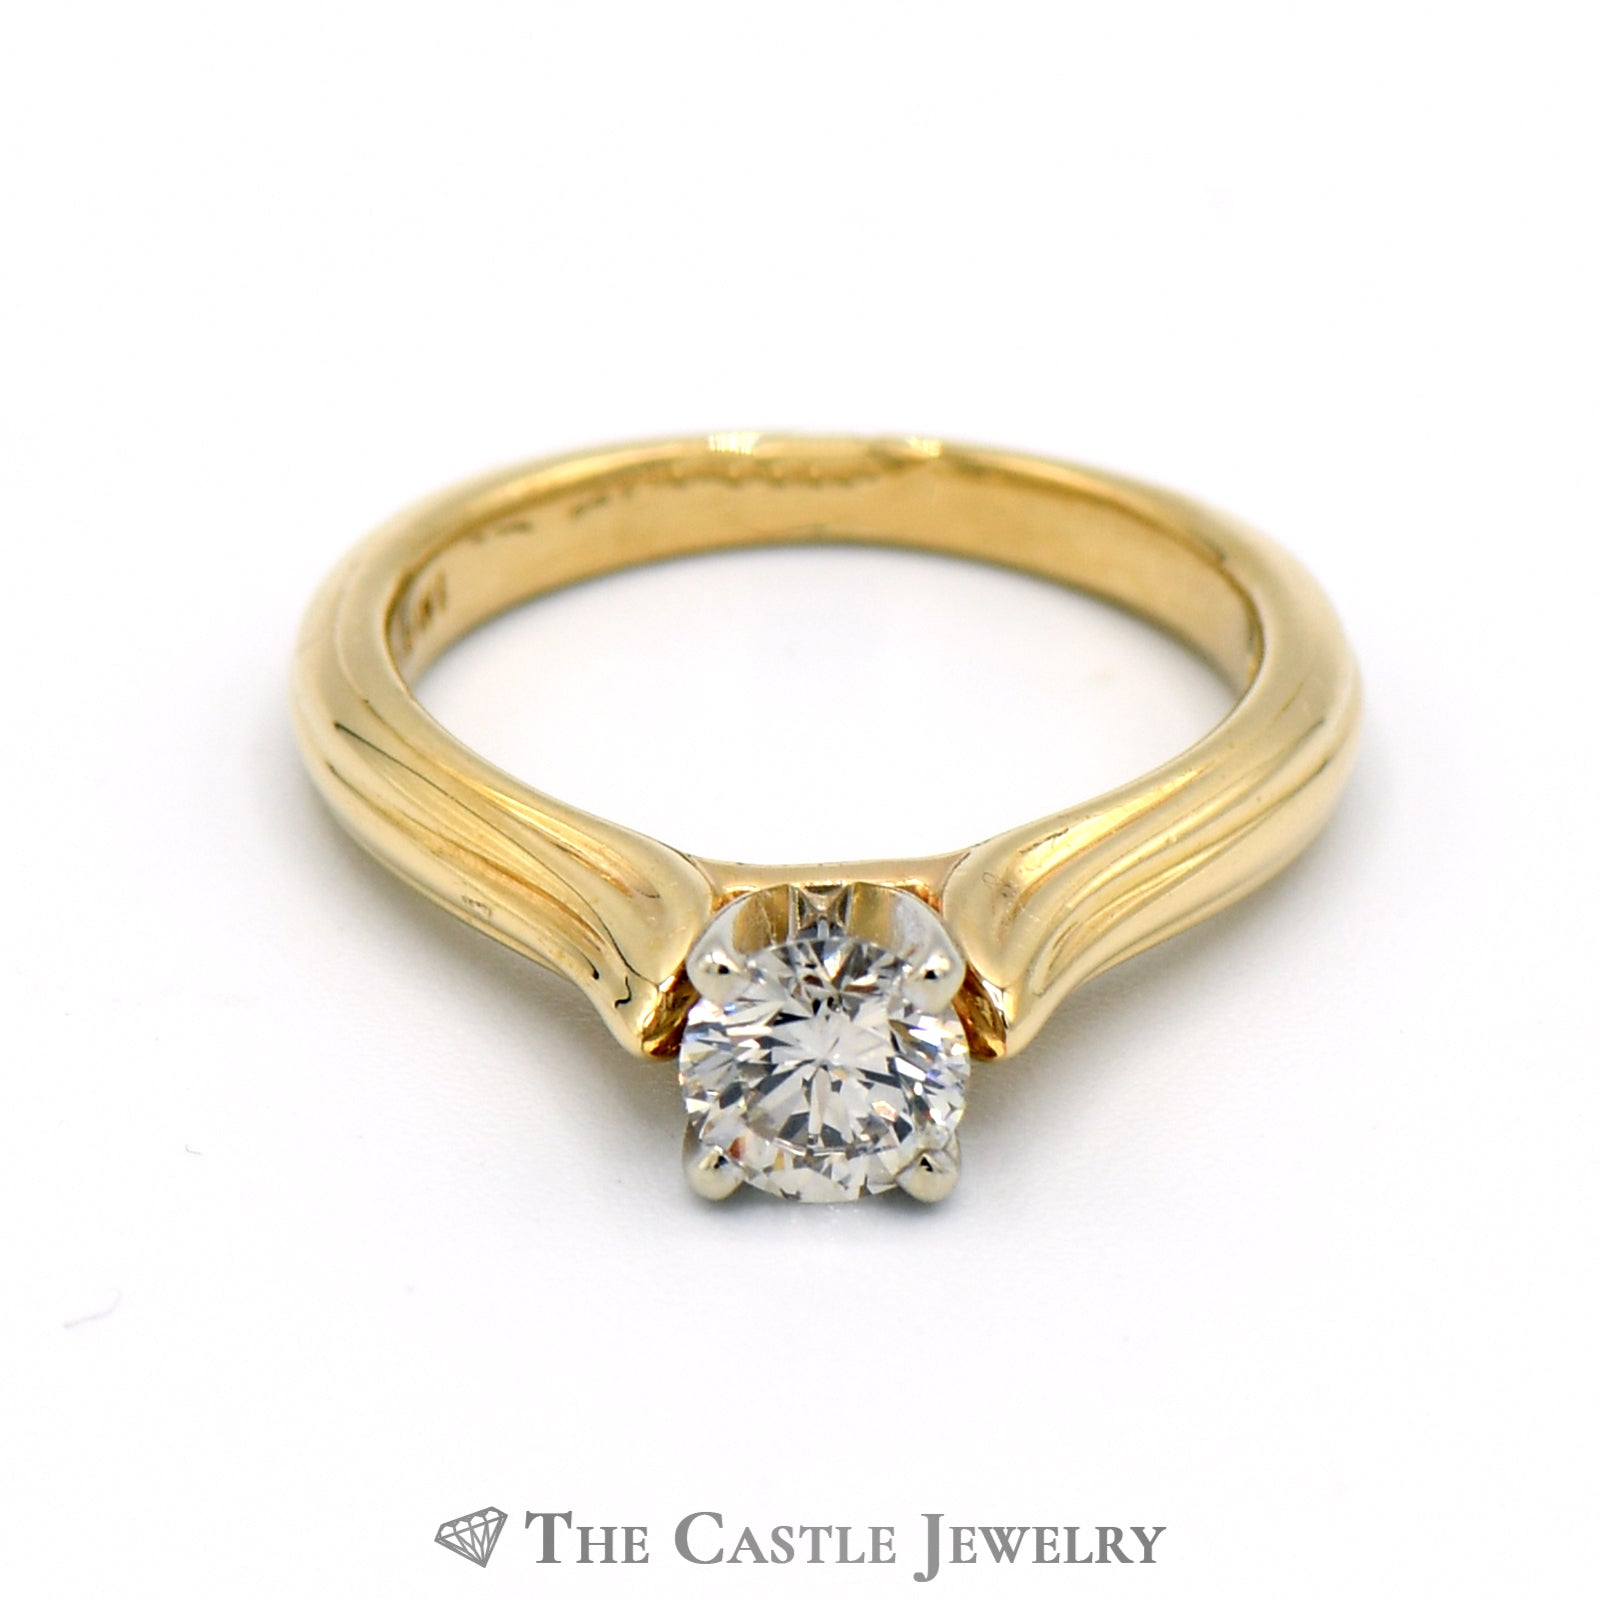 Round Brilliant Cut .53ct Diamond Solitaire Engagement Ring in 14K Yellow Gold